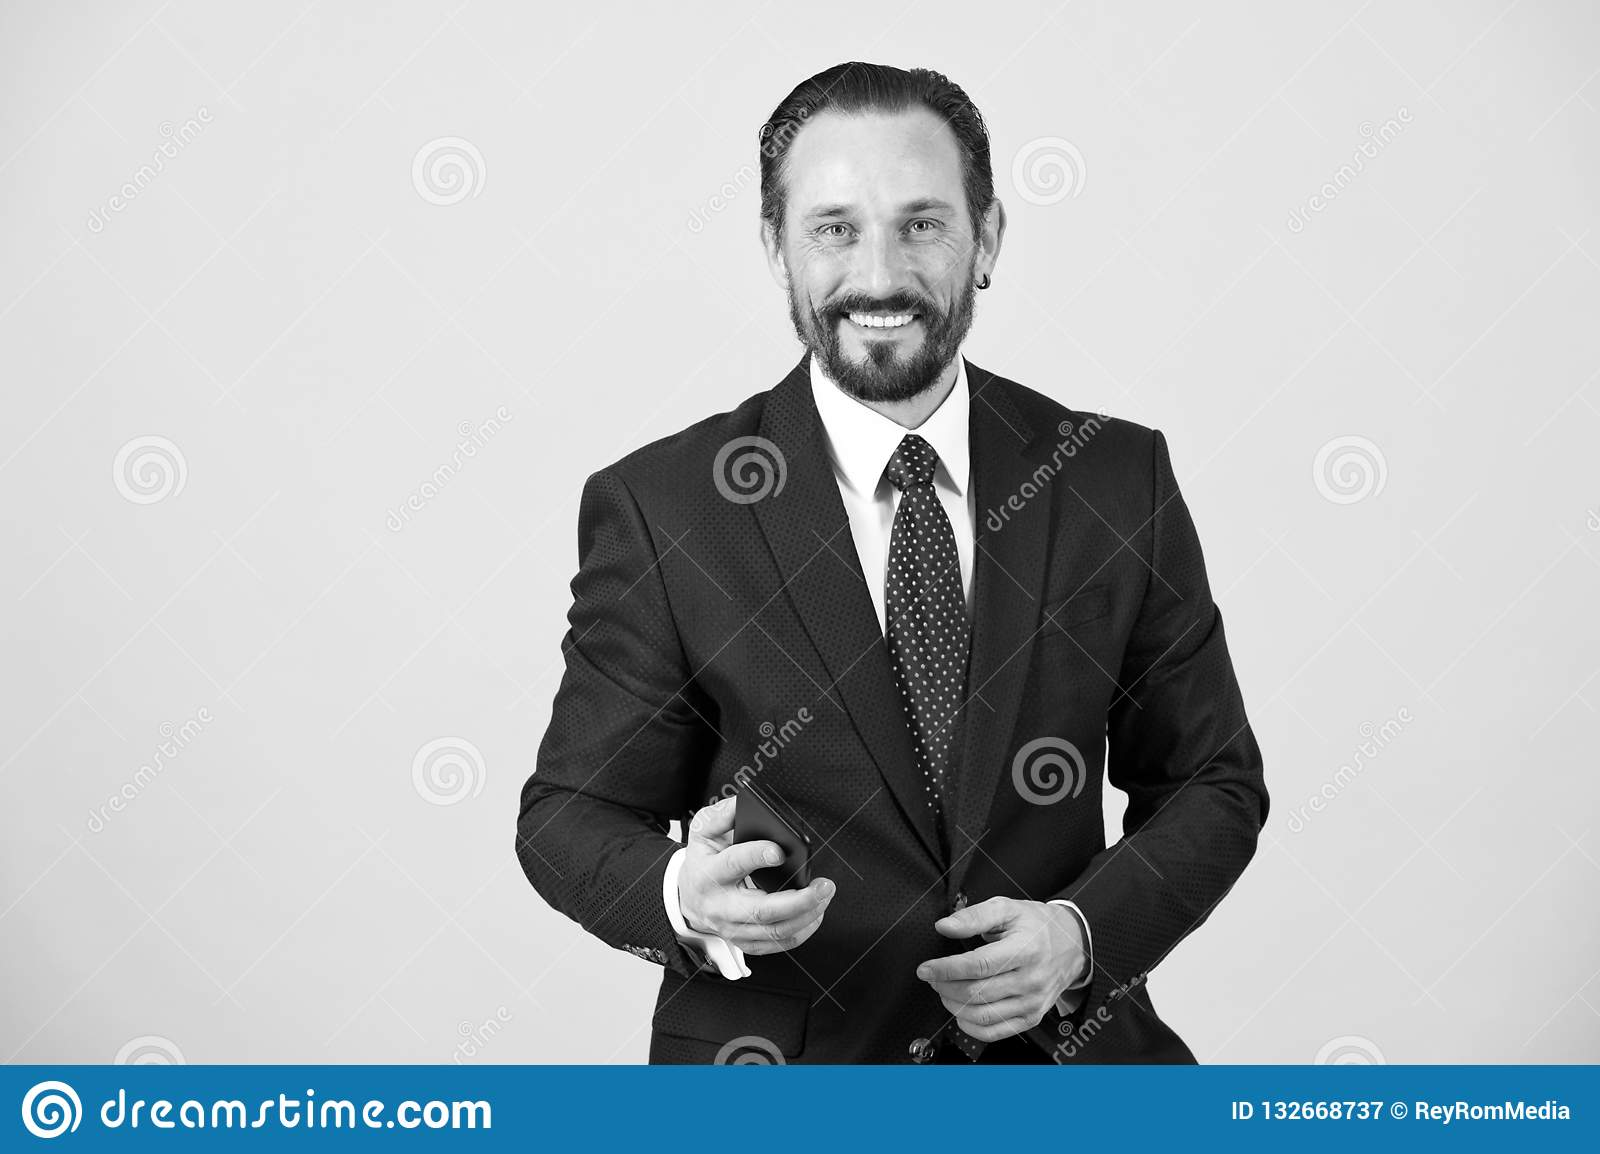 Smiled and happy businessman in suit and tie hold smartphone